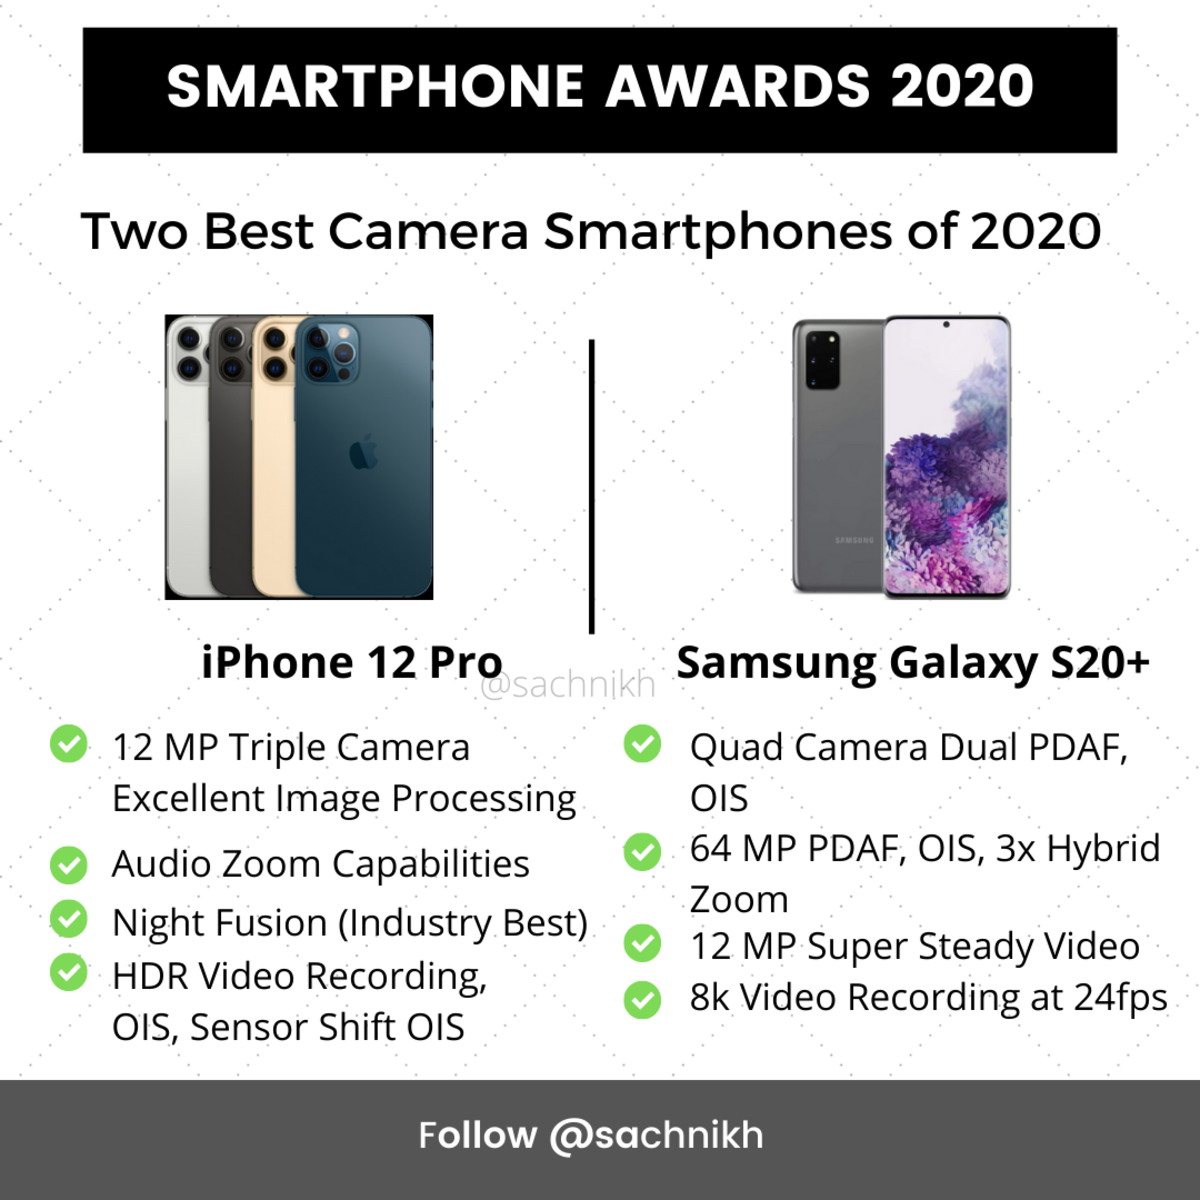 iPhone 12 Pro and Samsung Galaxy S20+